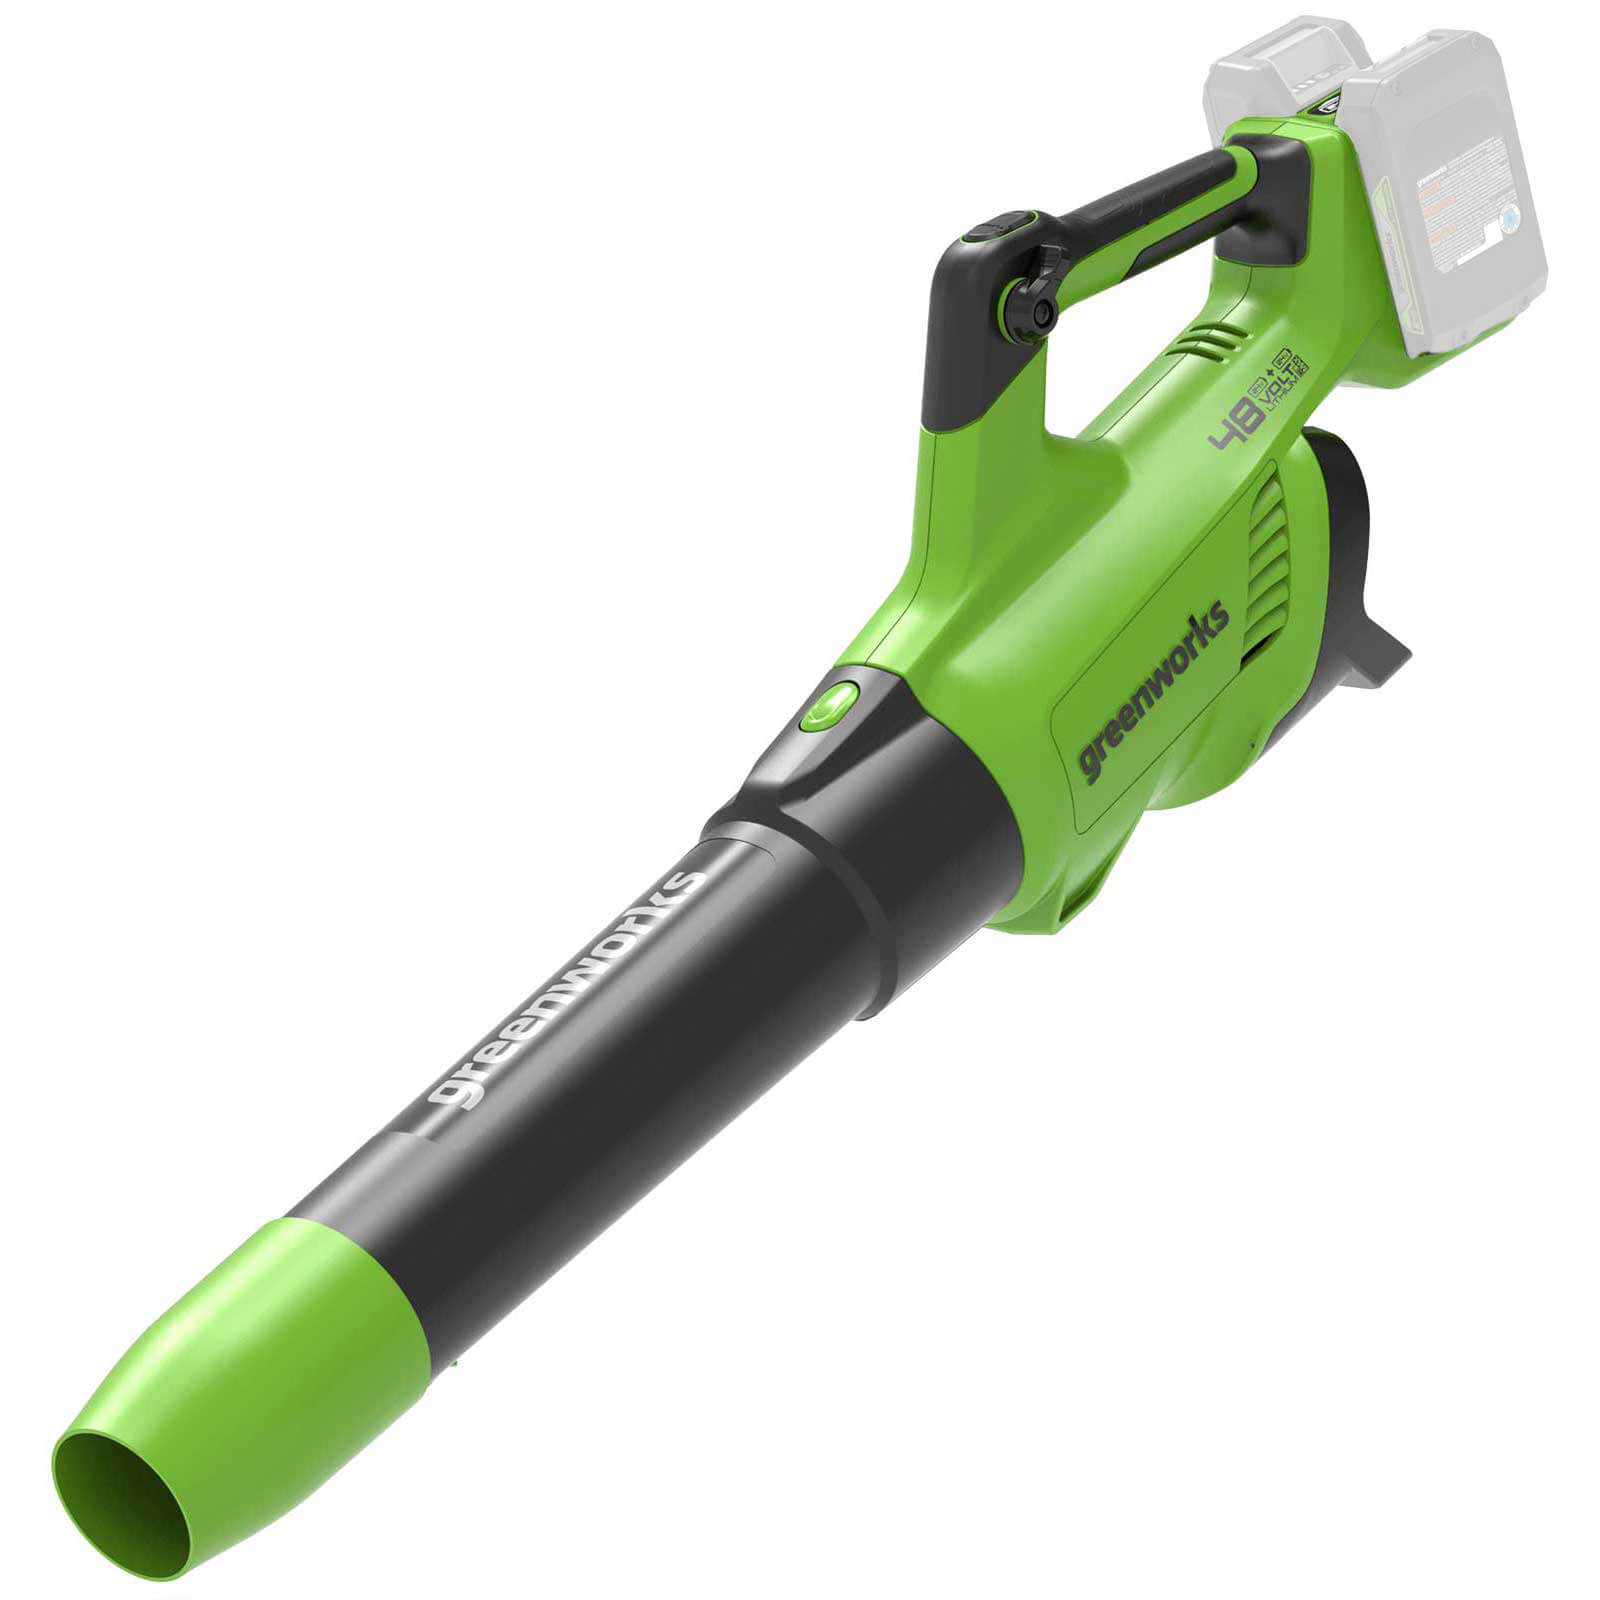 Greenworks G24X2AB 48v Cordless Axial Leaf Blower (Uses 2 x 24v) No Batteries No Charger